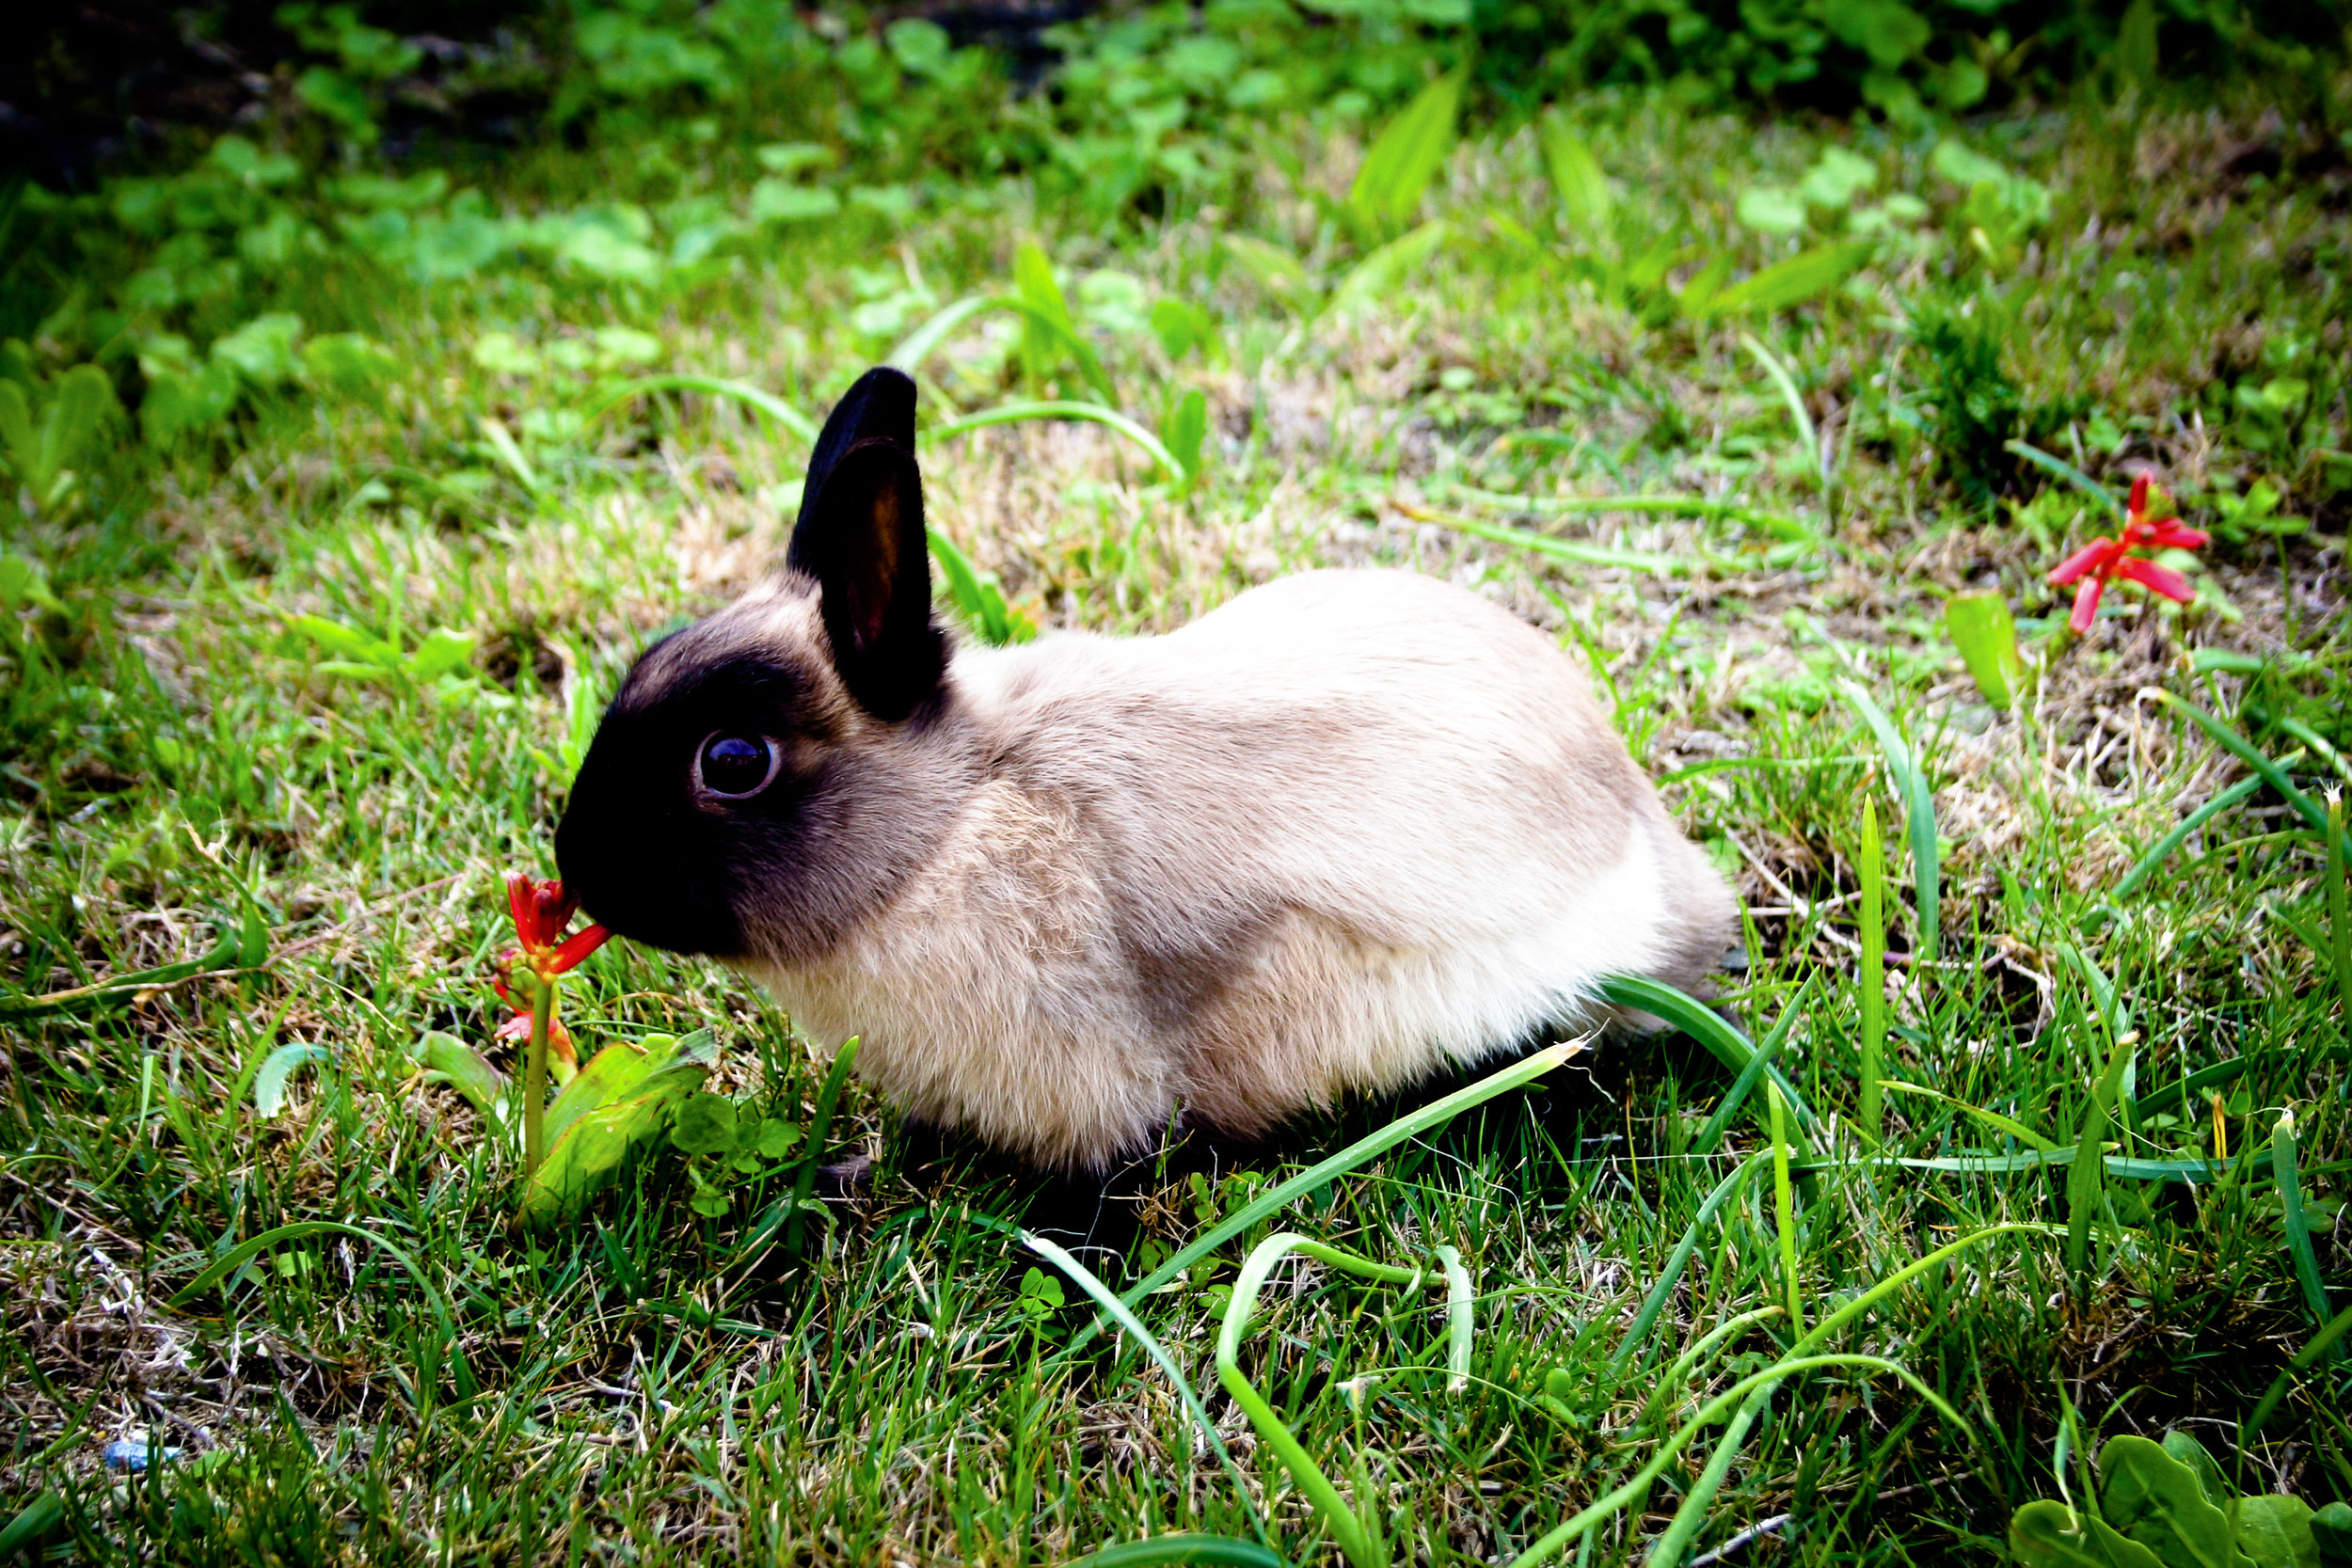 Bunny Stops to Smell the Flowers on an Outdoor Jaunt